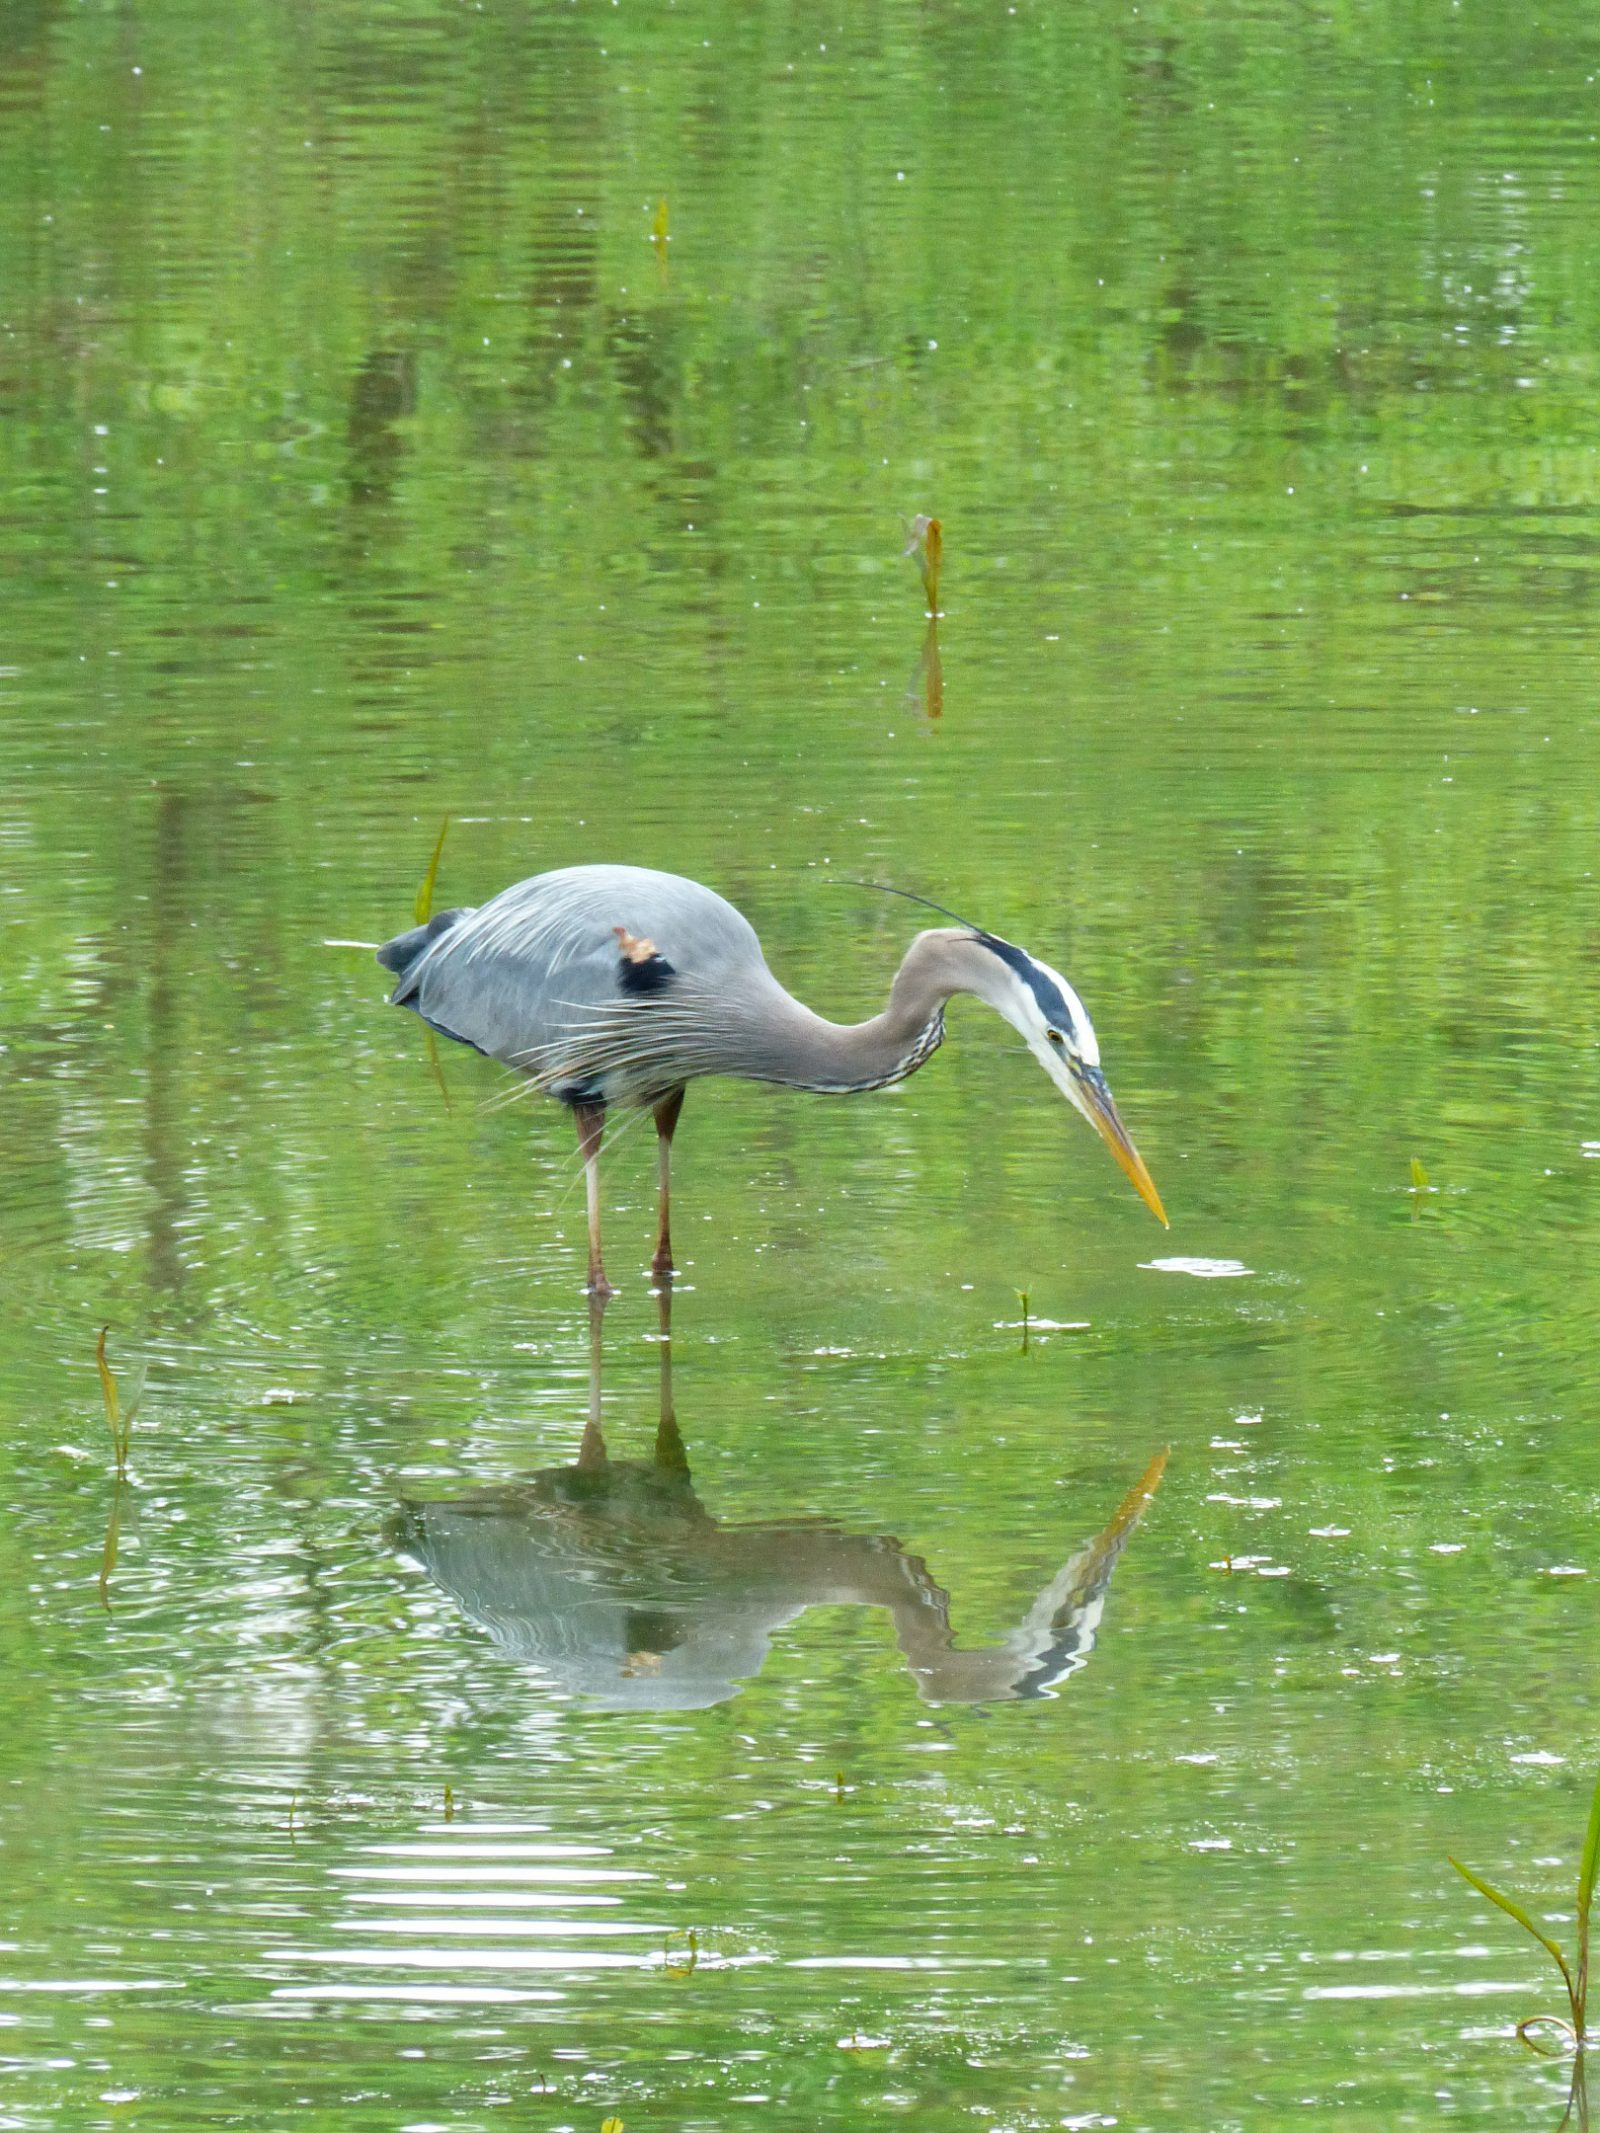 Heron in reflection